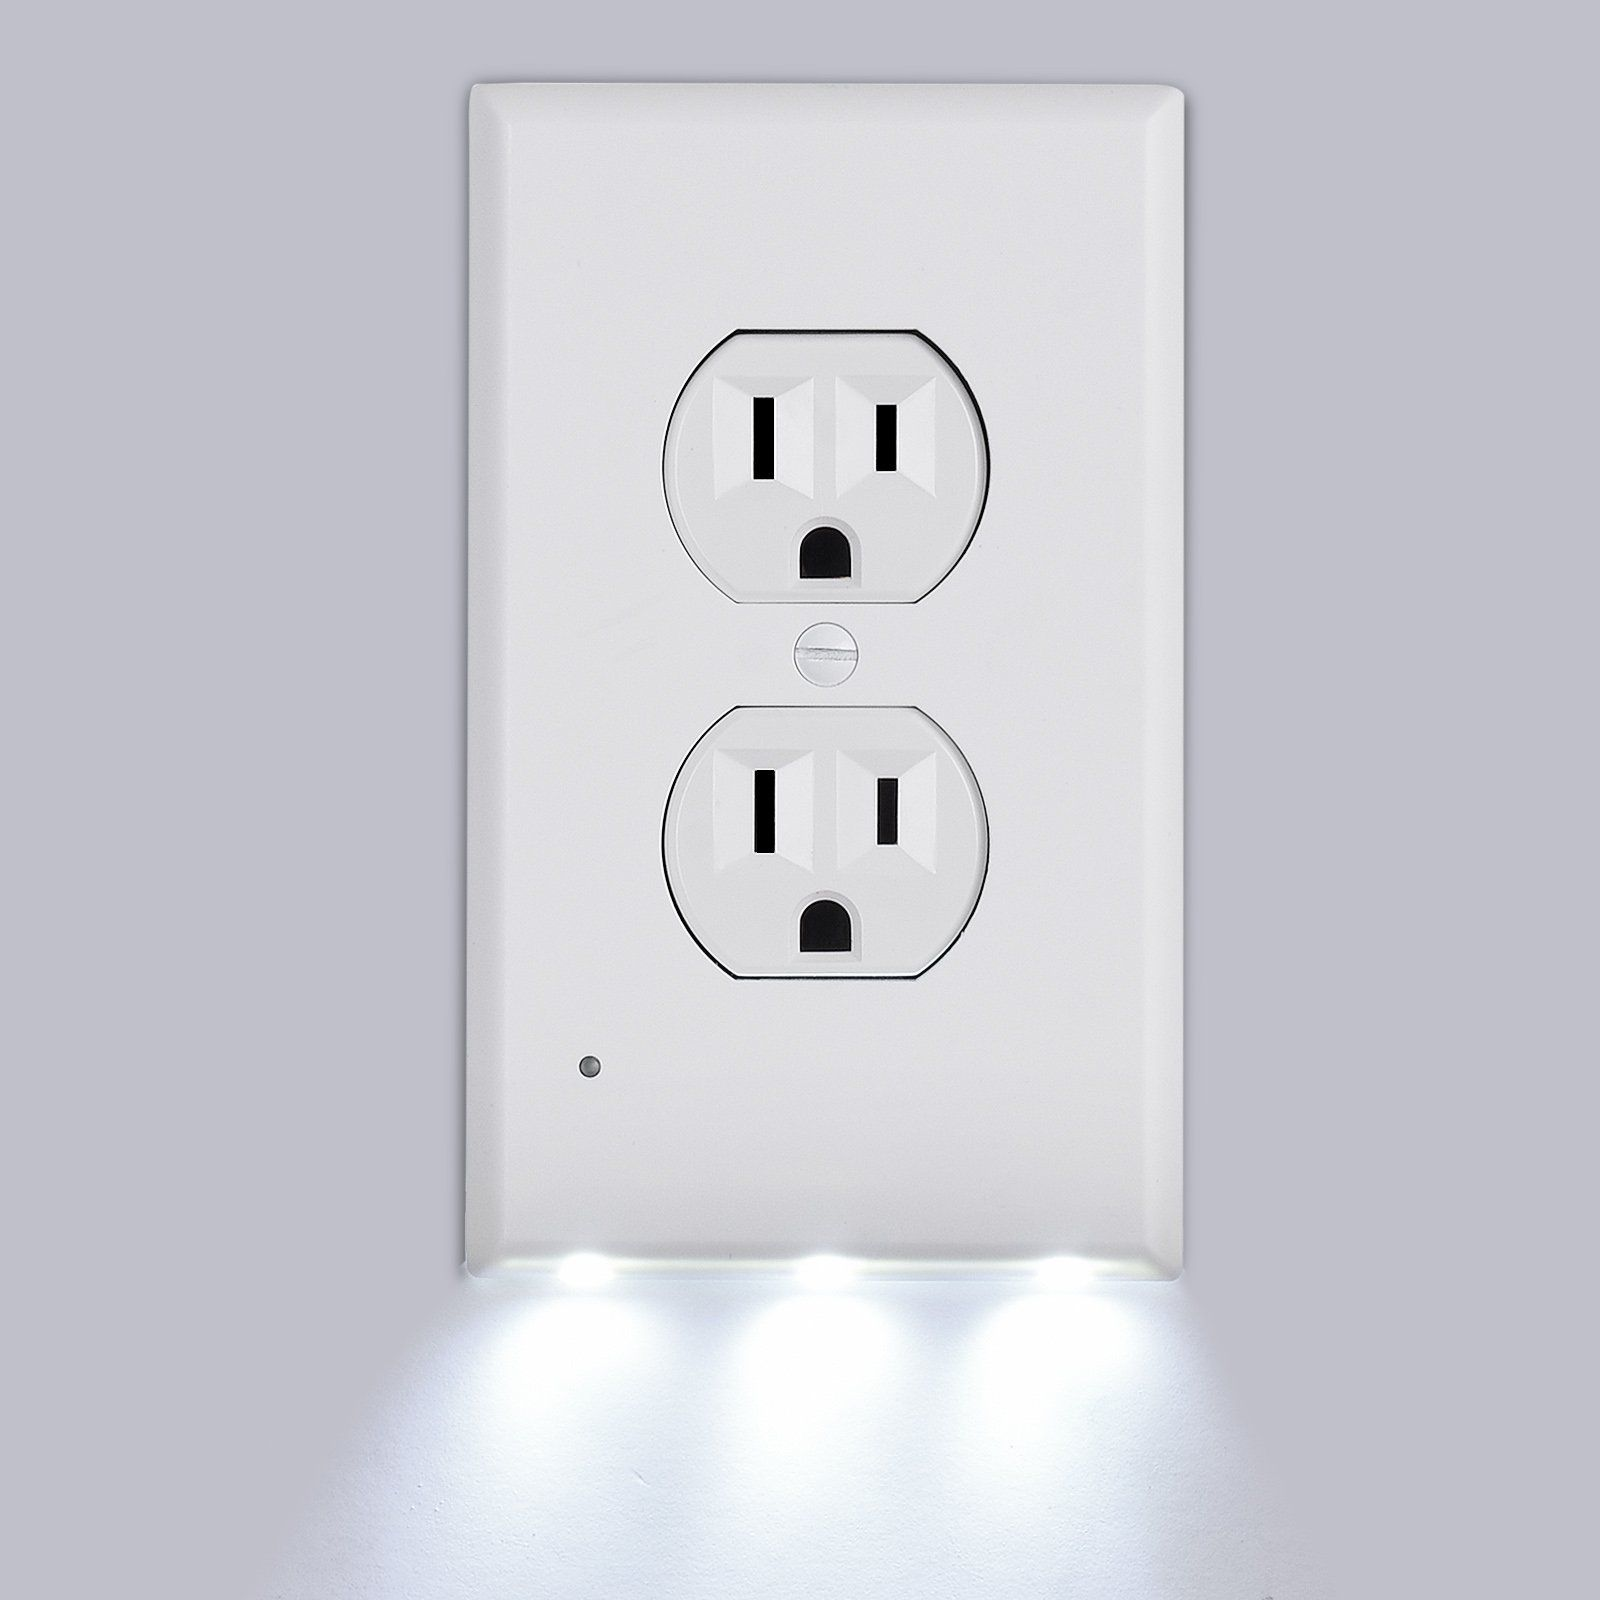 Outlet Covers, Tensun Duplex Wall Plate with LED Night Light Switch ...